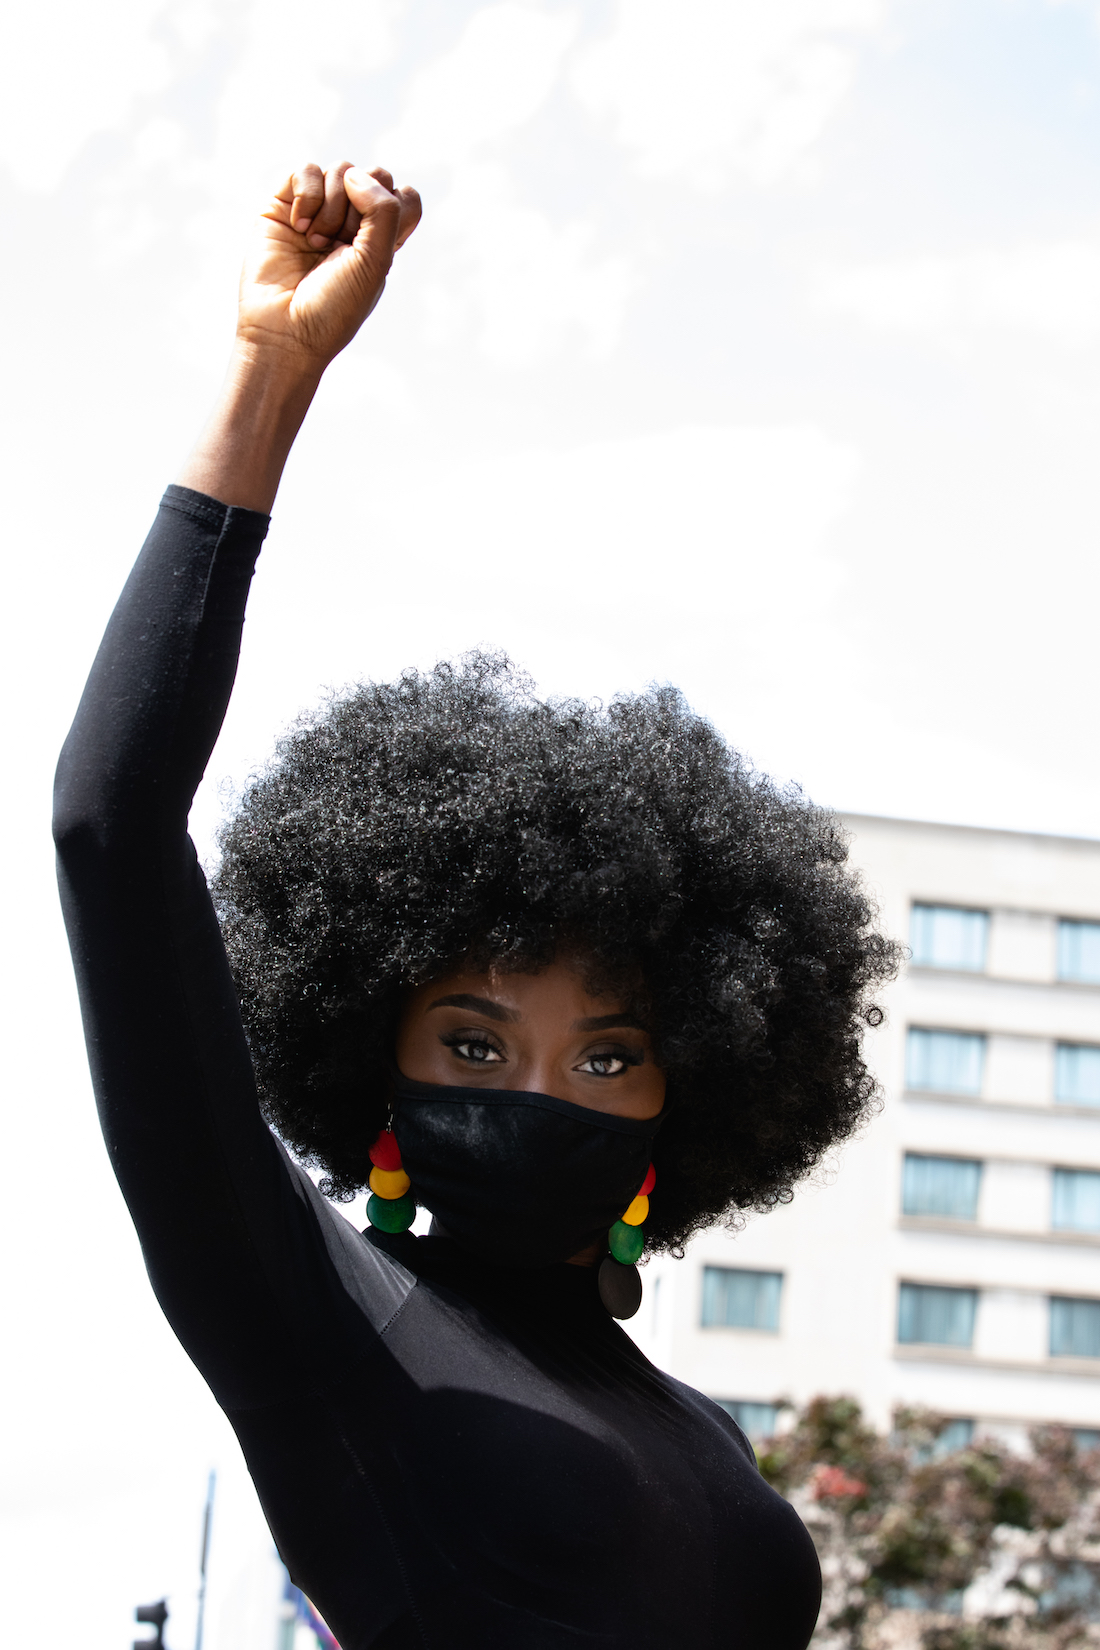 photo of activist with fist raised, photo by Cheriss May